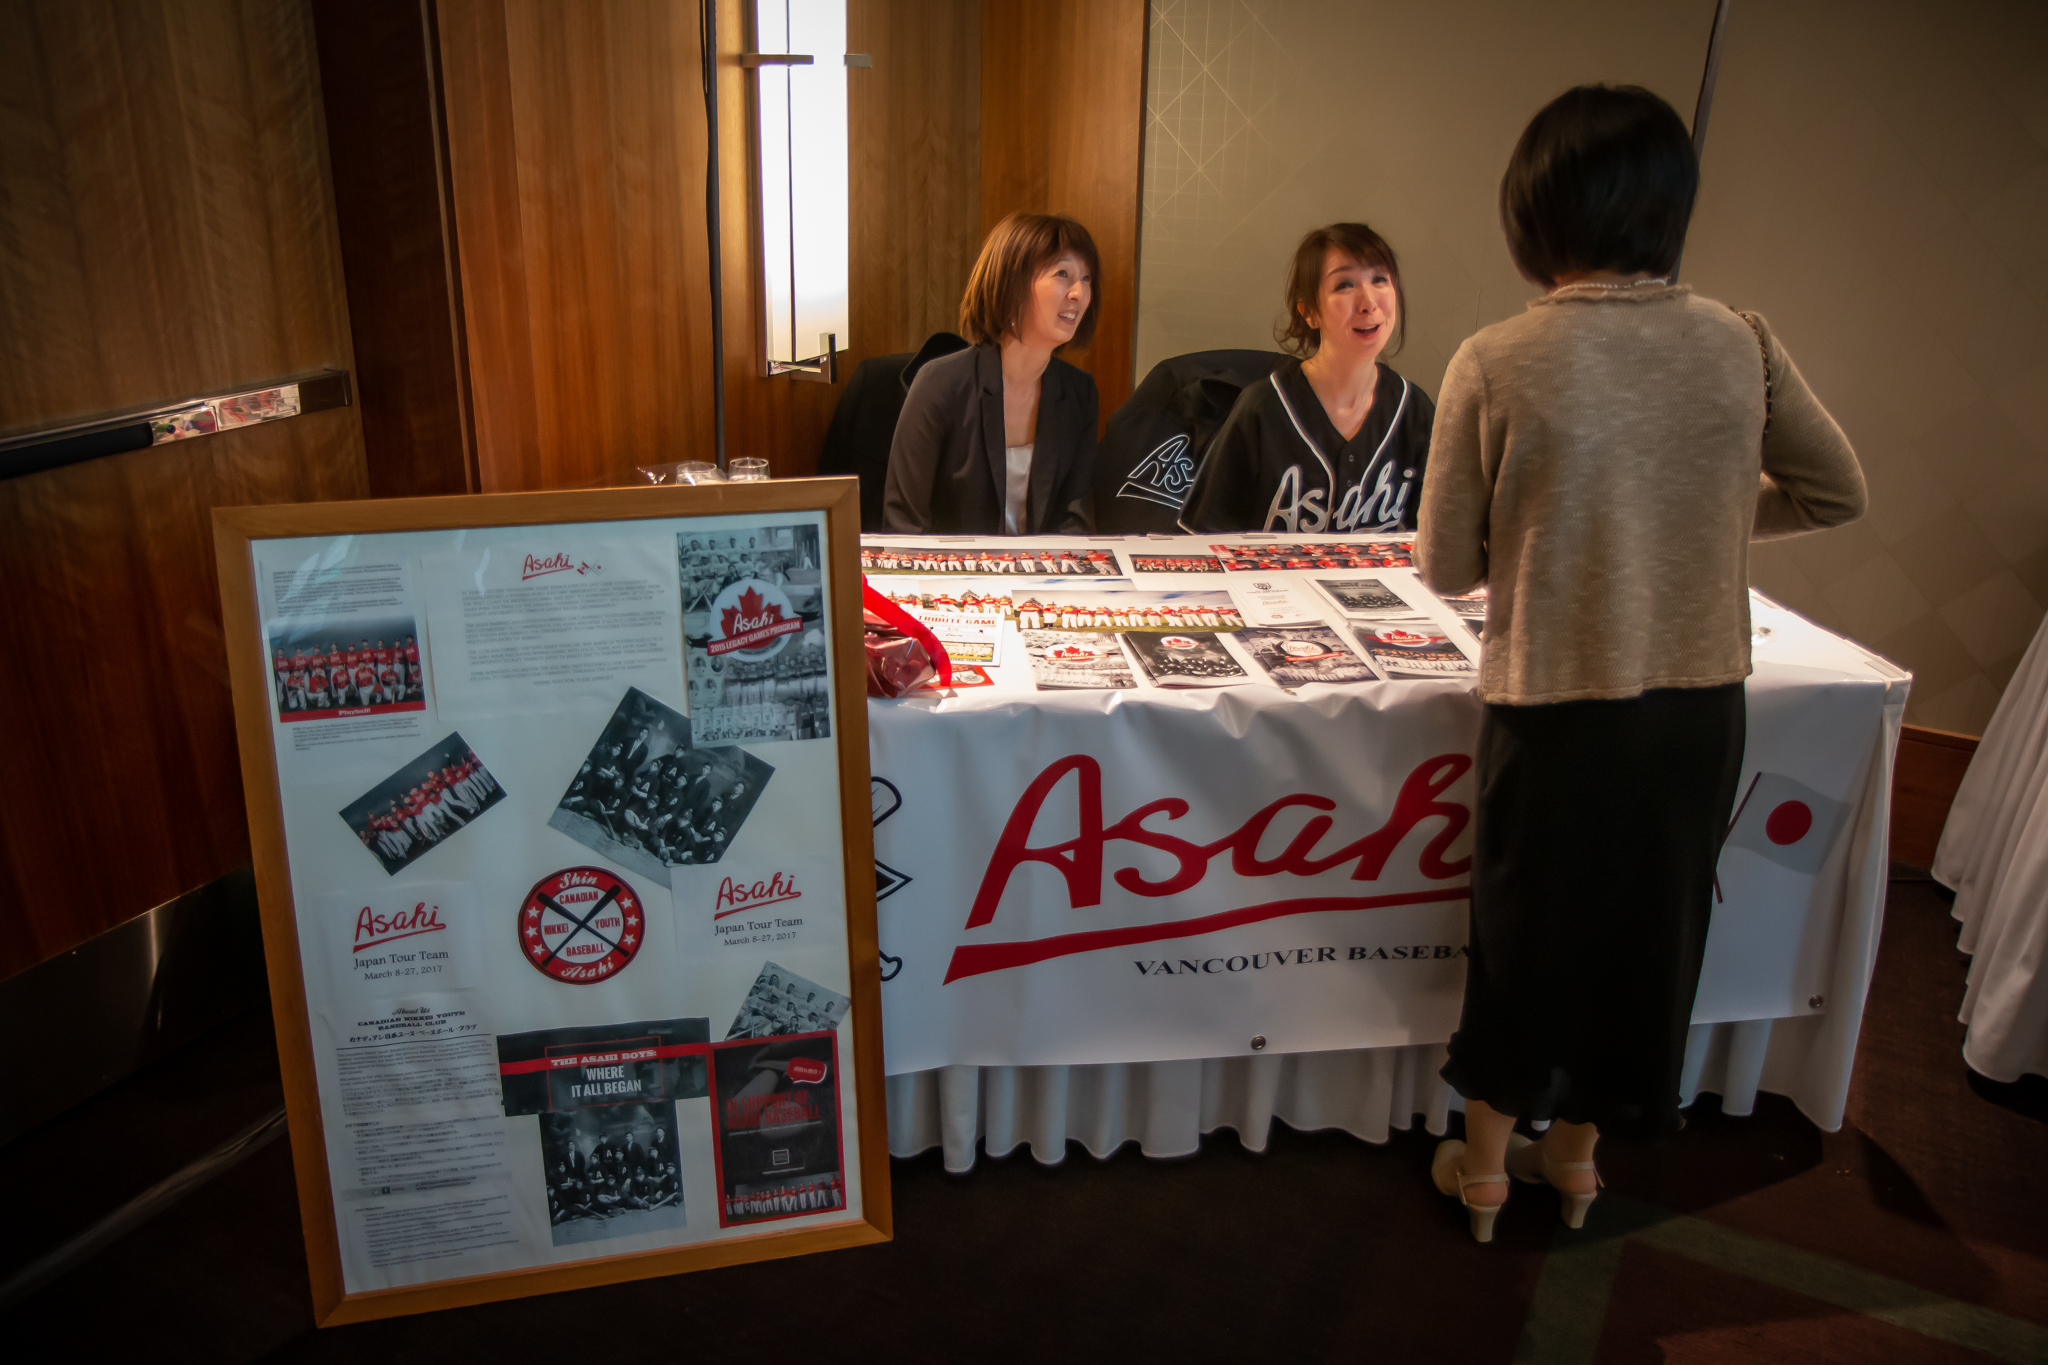 190310 Sakura Gala 2019 16-54-07 - Photo by Adam PW Smith.jpg